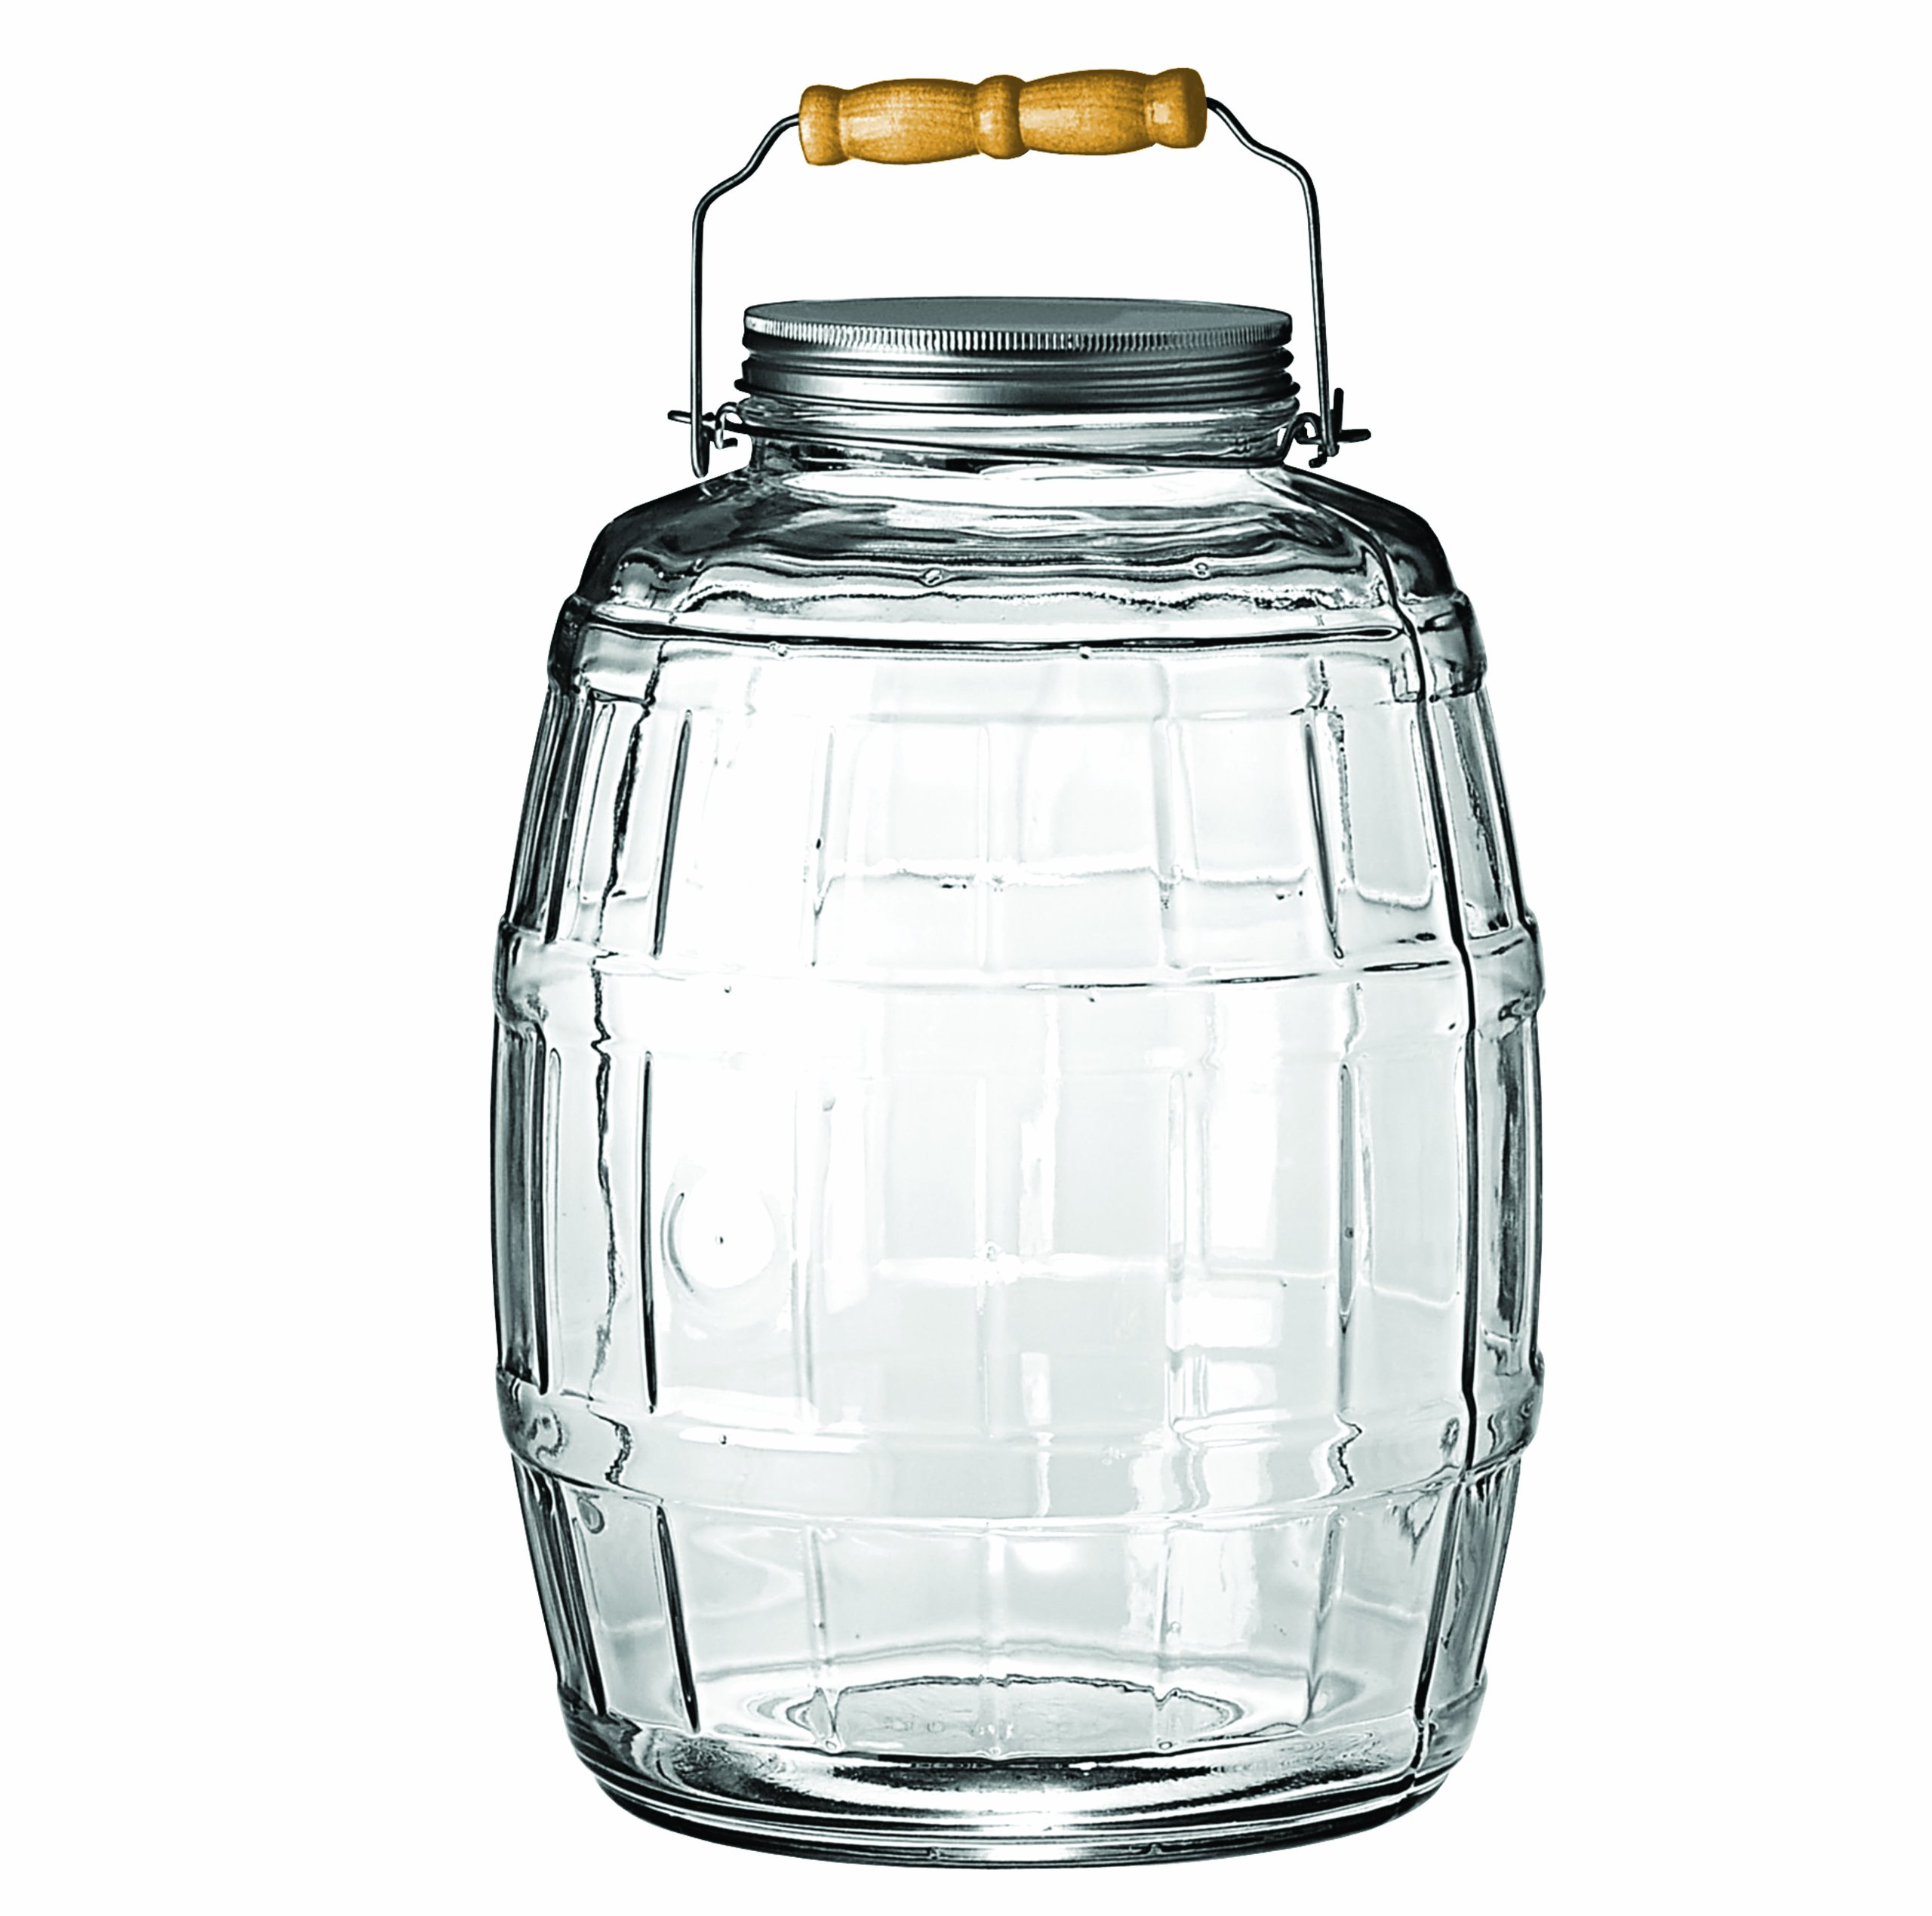 Anchor Hocking 2.5-Gallon Glass Barrel Jar with Brushed Aluminum Lid by Anchor Hocking